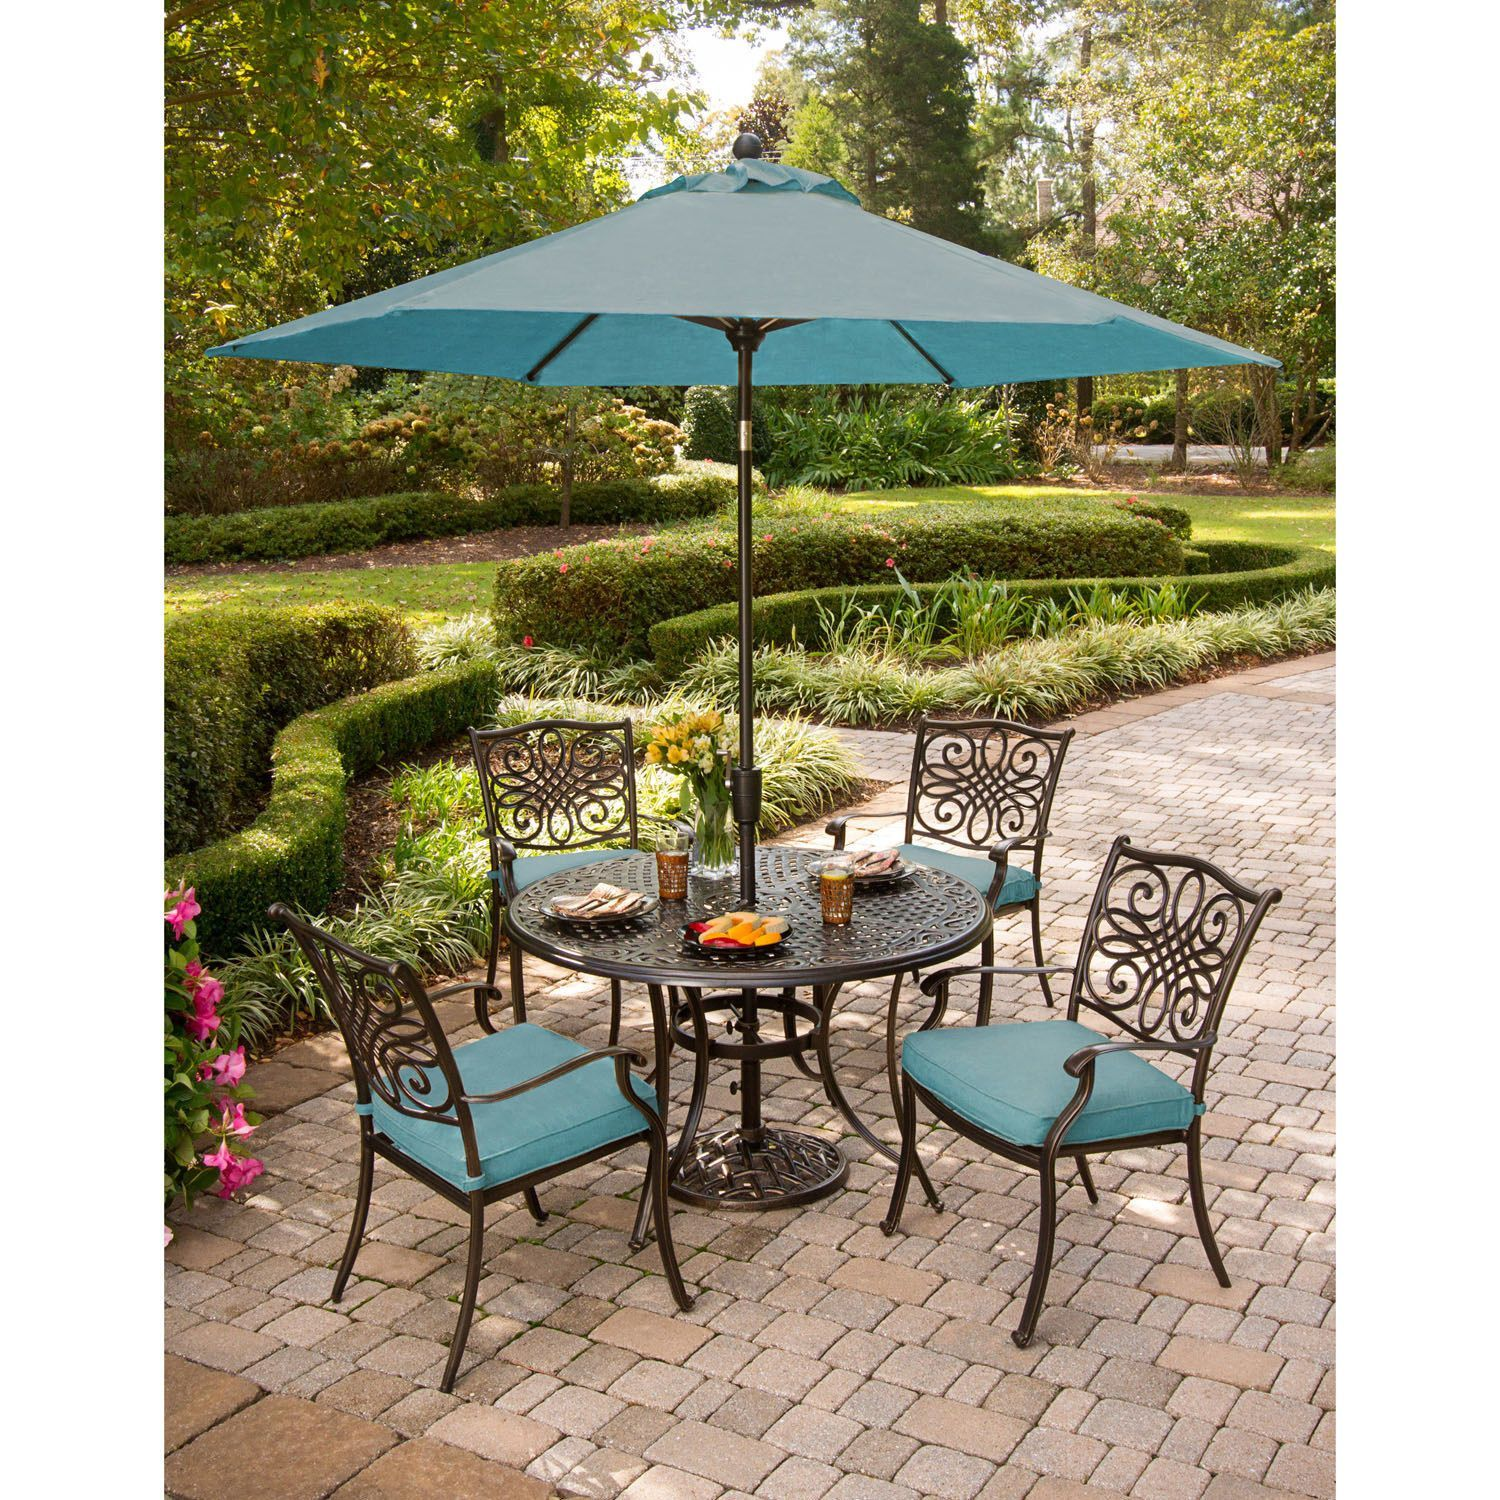 Cambridge Seasons 5 Piece Dining Set with Table Umbrella and Stand